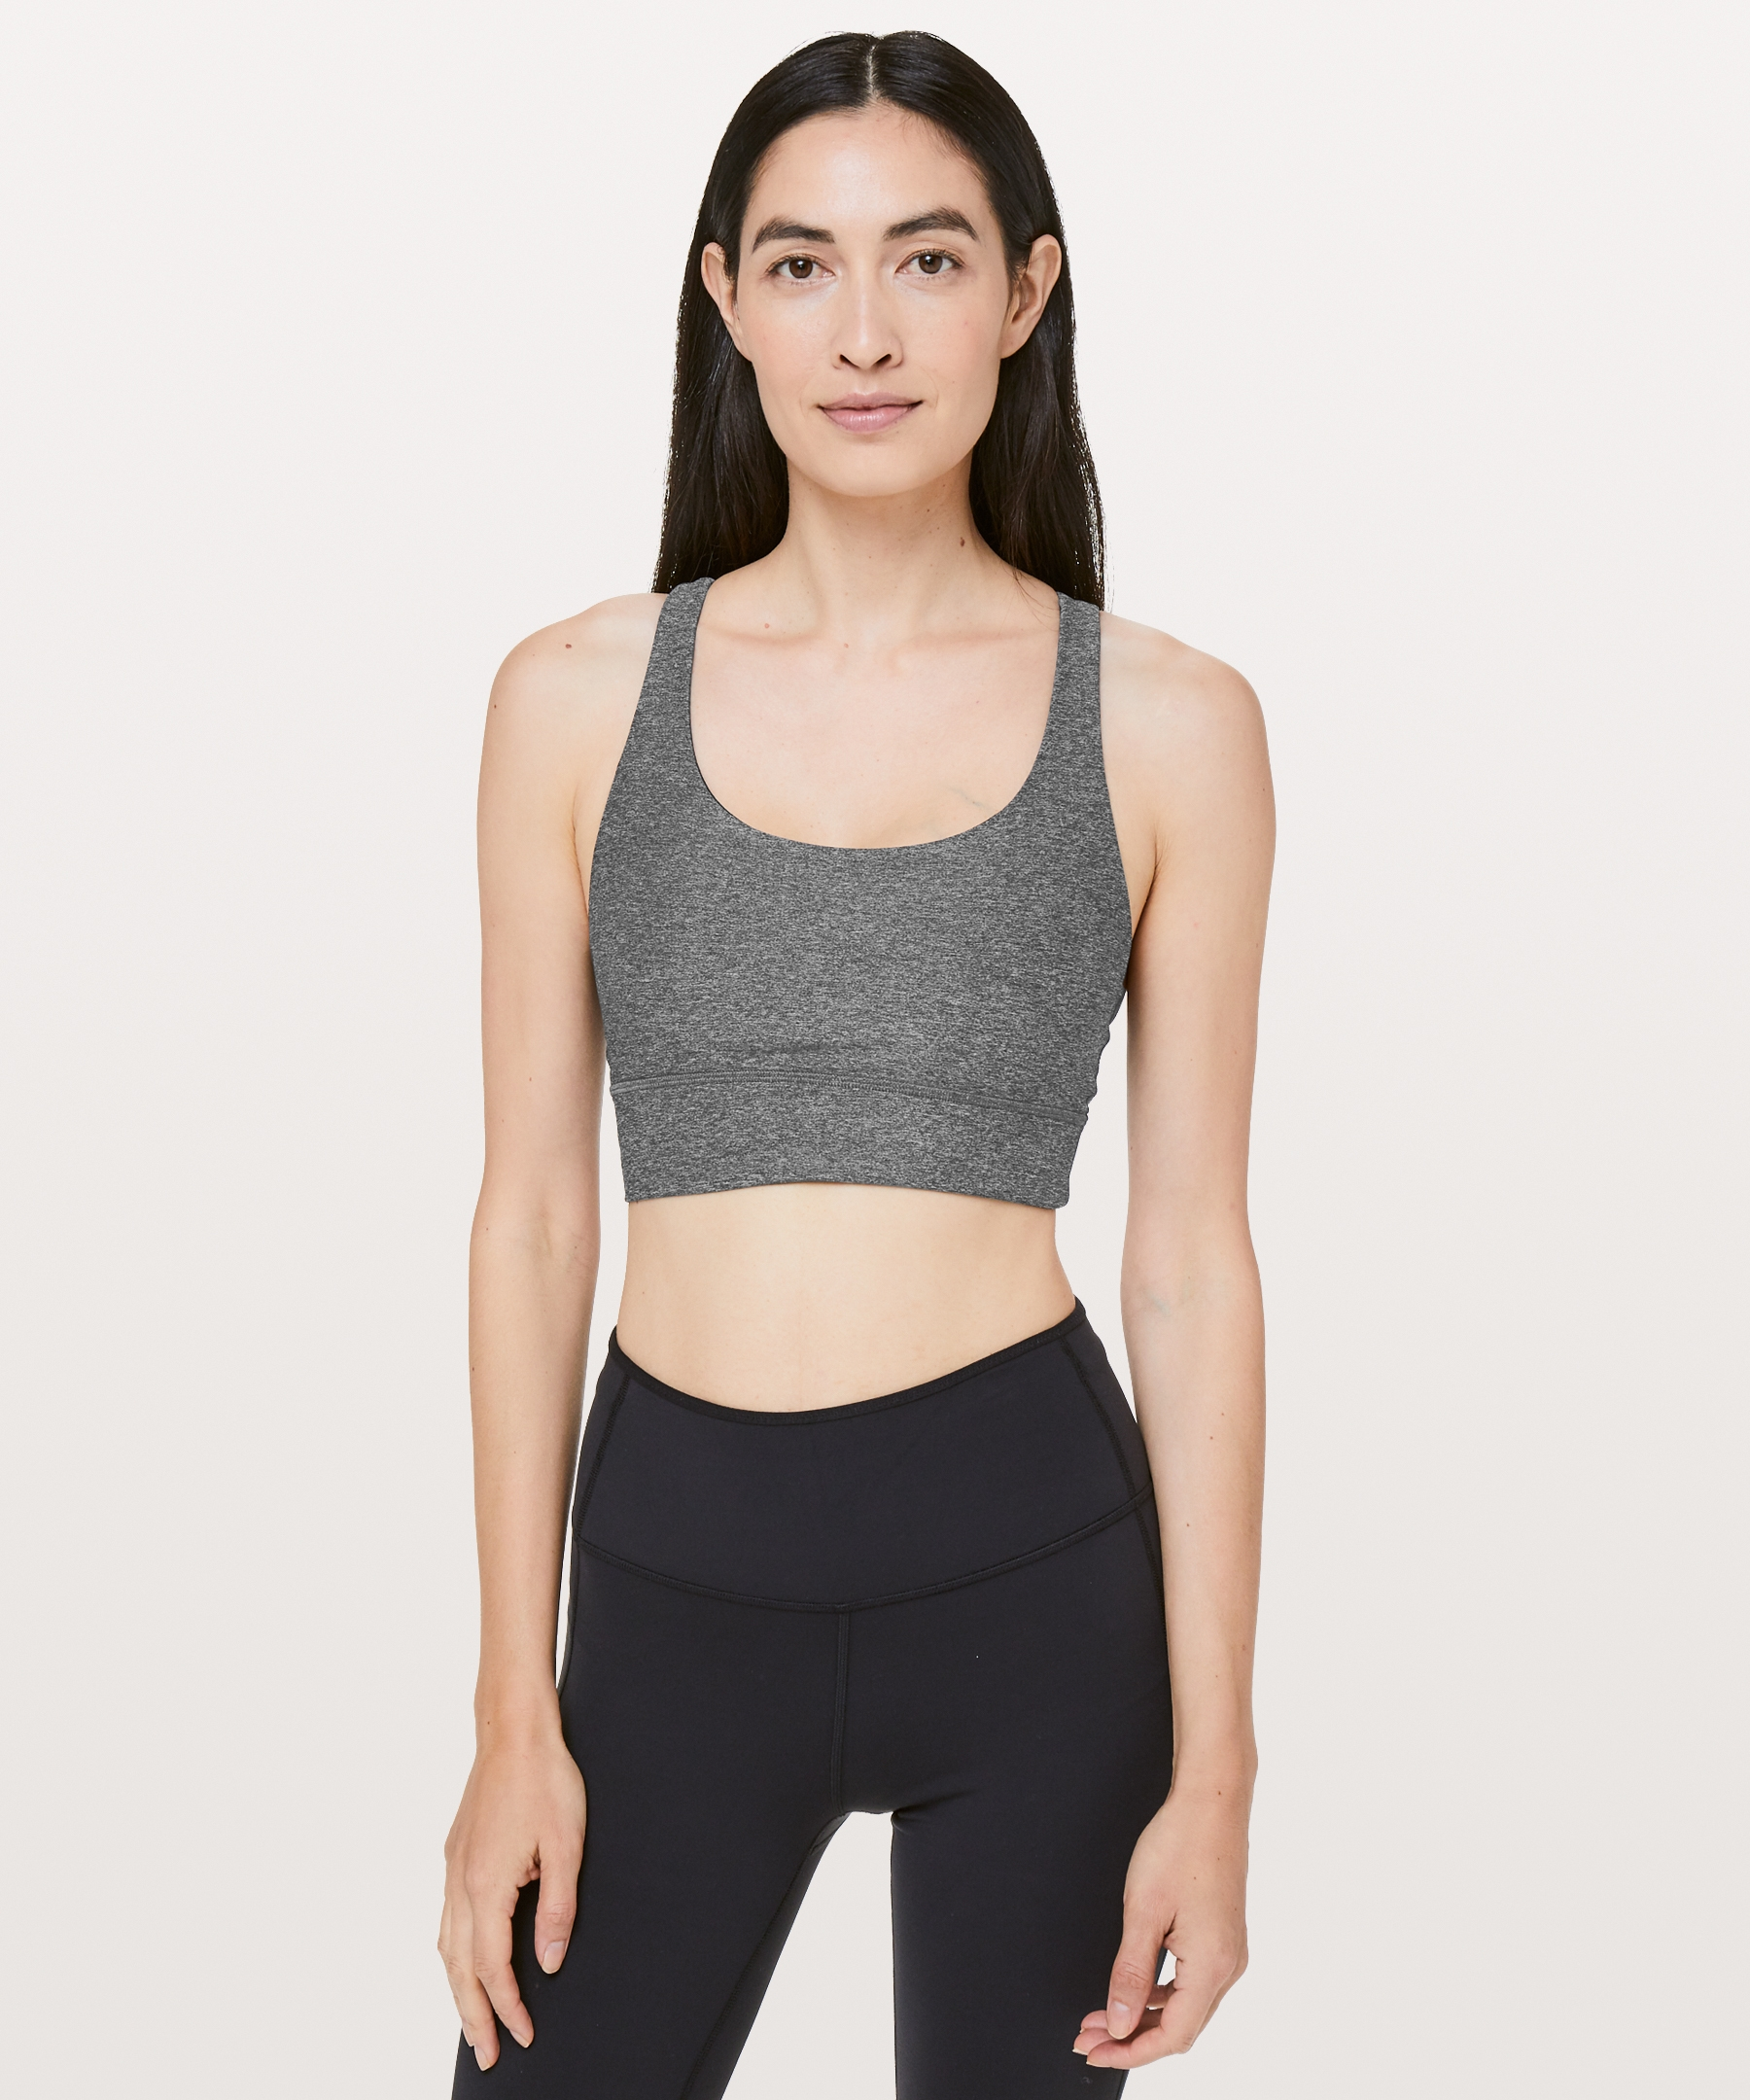 632313a682228 Energy Bra Long Line - We created a long-line version of this fan-favourite  sports bra to give you extra coverage for yoga